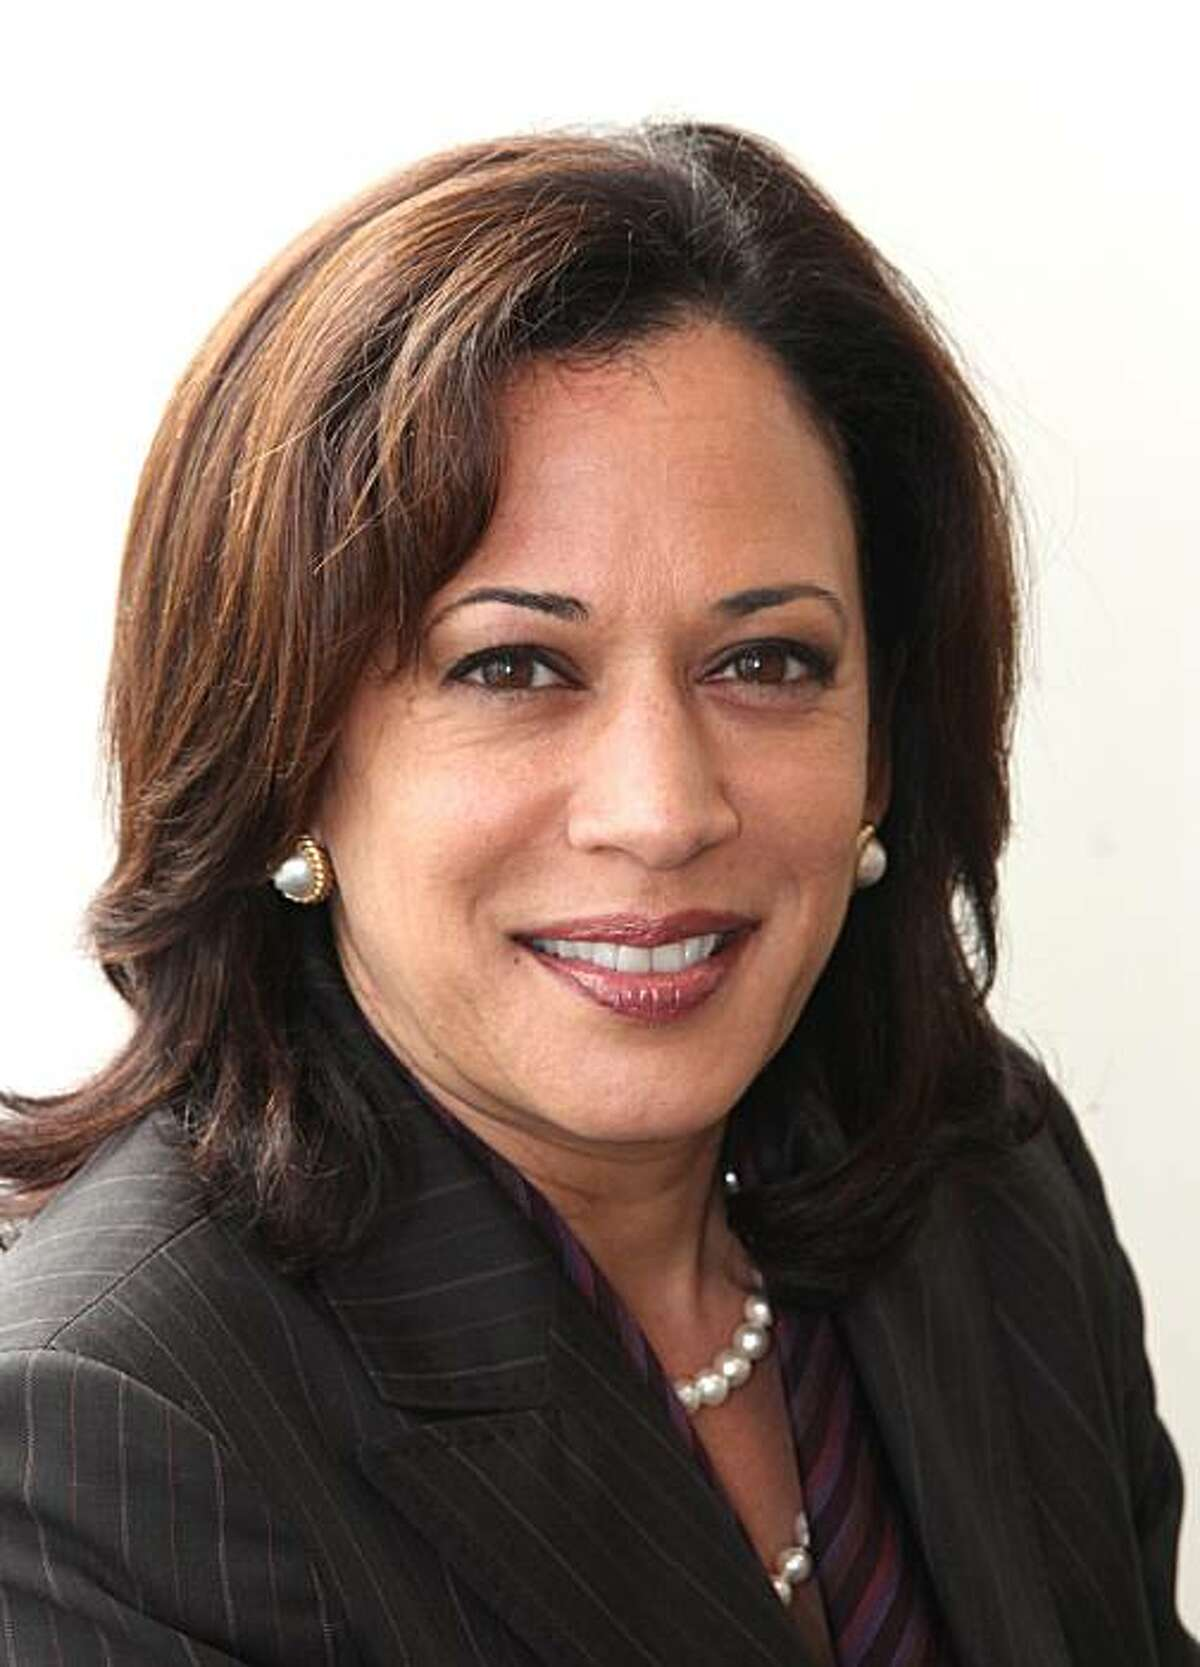 This Tuesday, April 20, 2010 photo shows San Francisco District Attorney Kamala Harris who is running for the Democratic nomination for Attorney General in the June 2010 primary, in Sacramento, Calif. (AP Photo/Rich Pedroncelli)